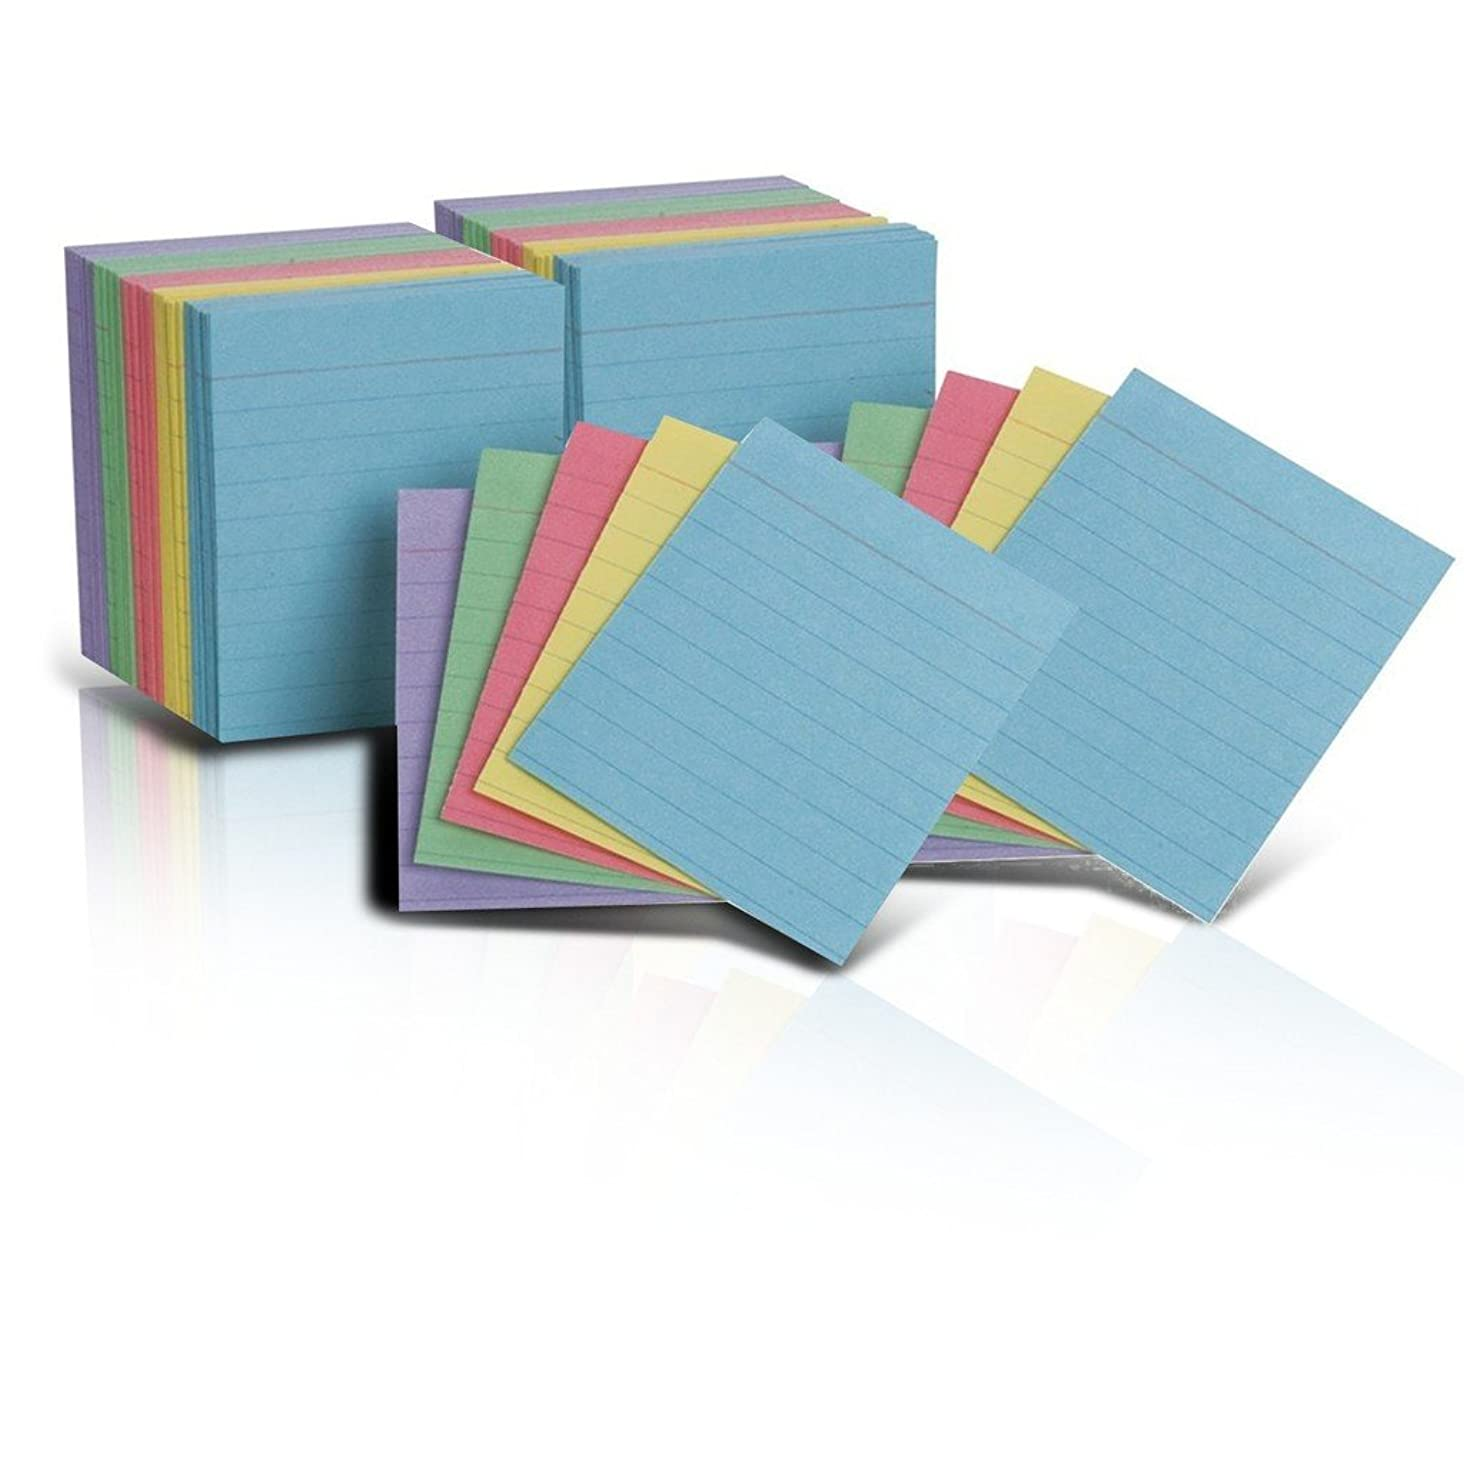 Oxford Half Size Index Cards, Assorted Colors, 3 x 2.5, Ruled, 2 Packs of 200 - Total Of 400 (10010)